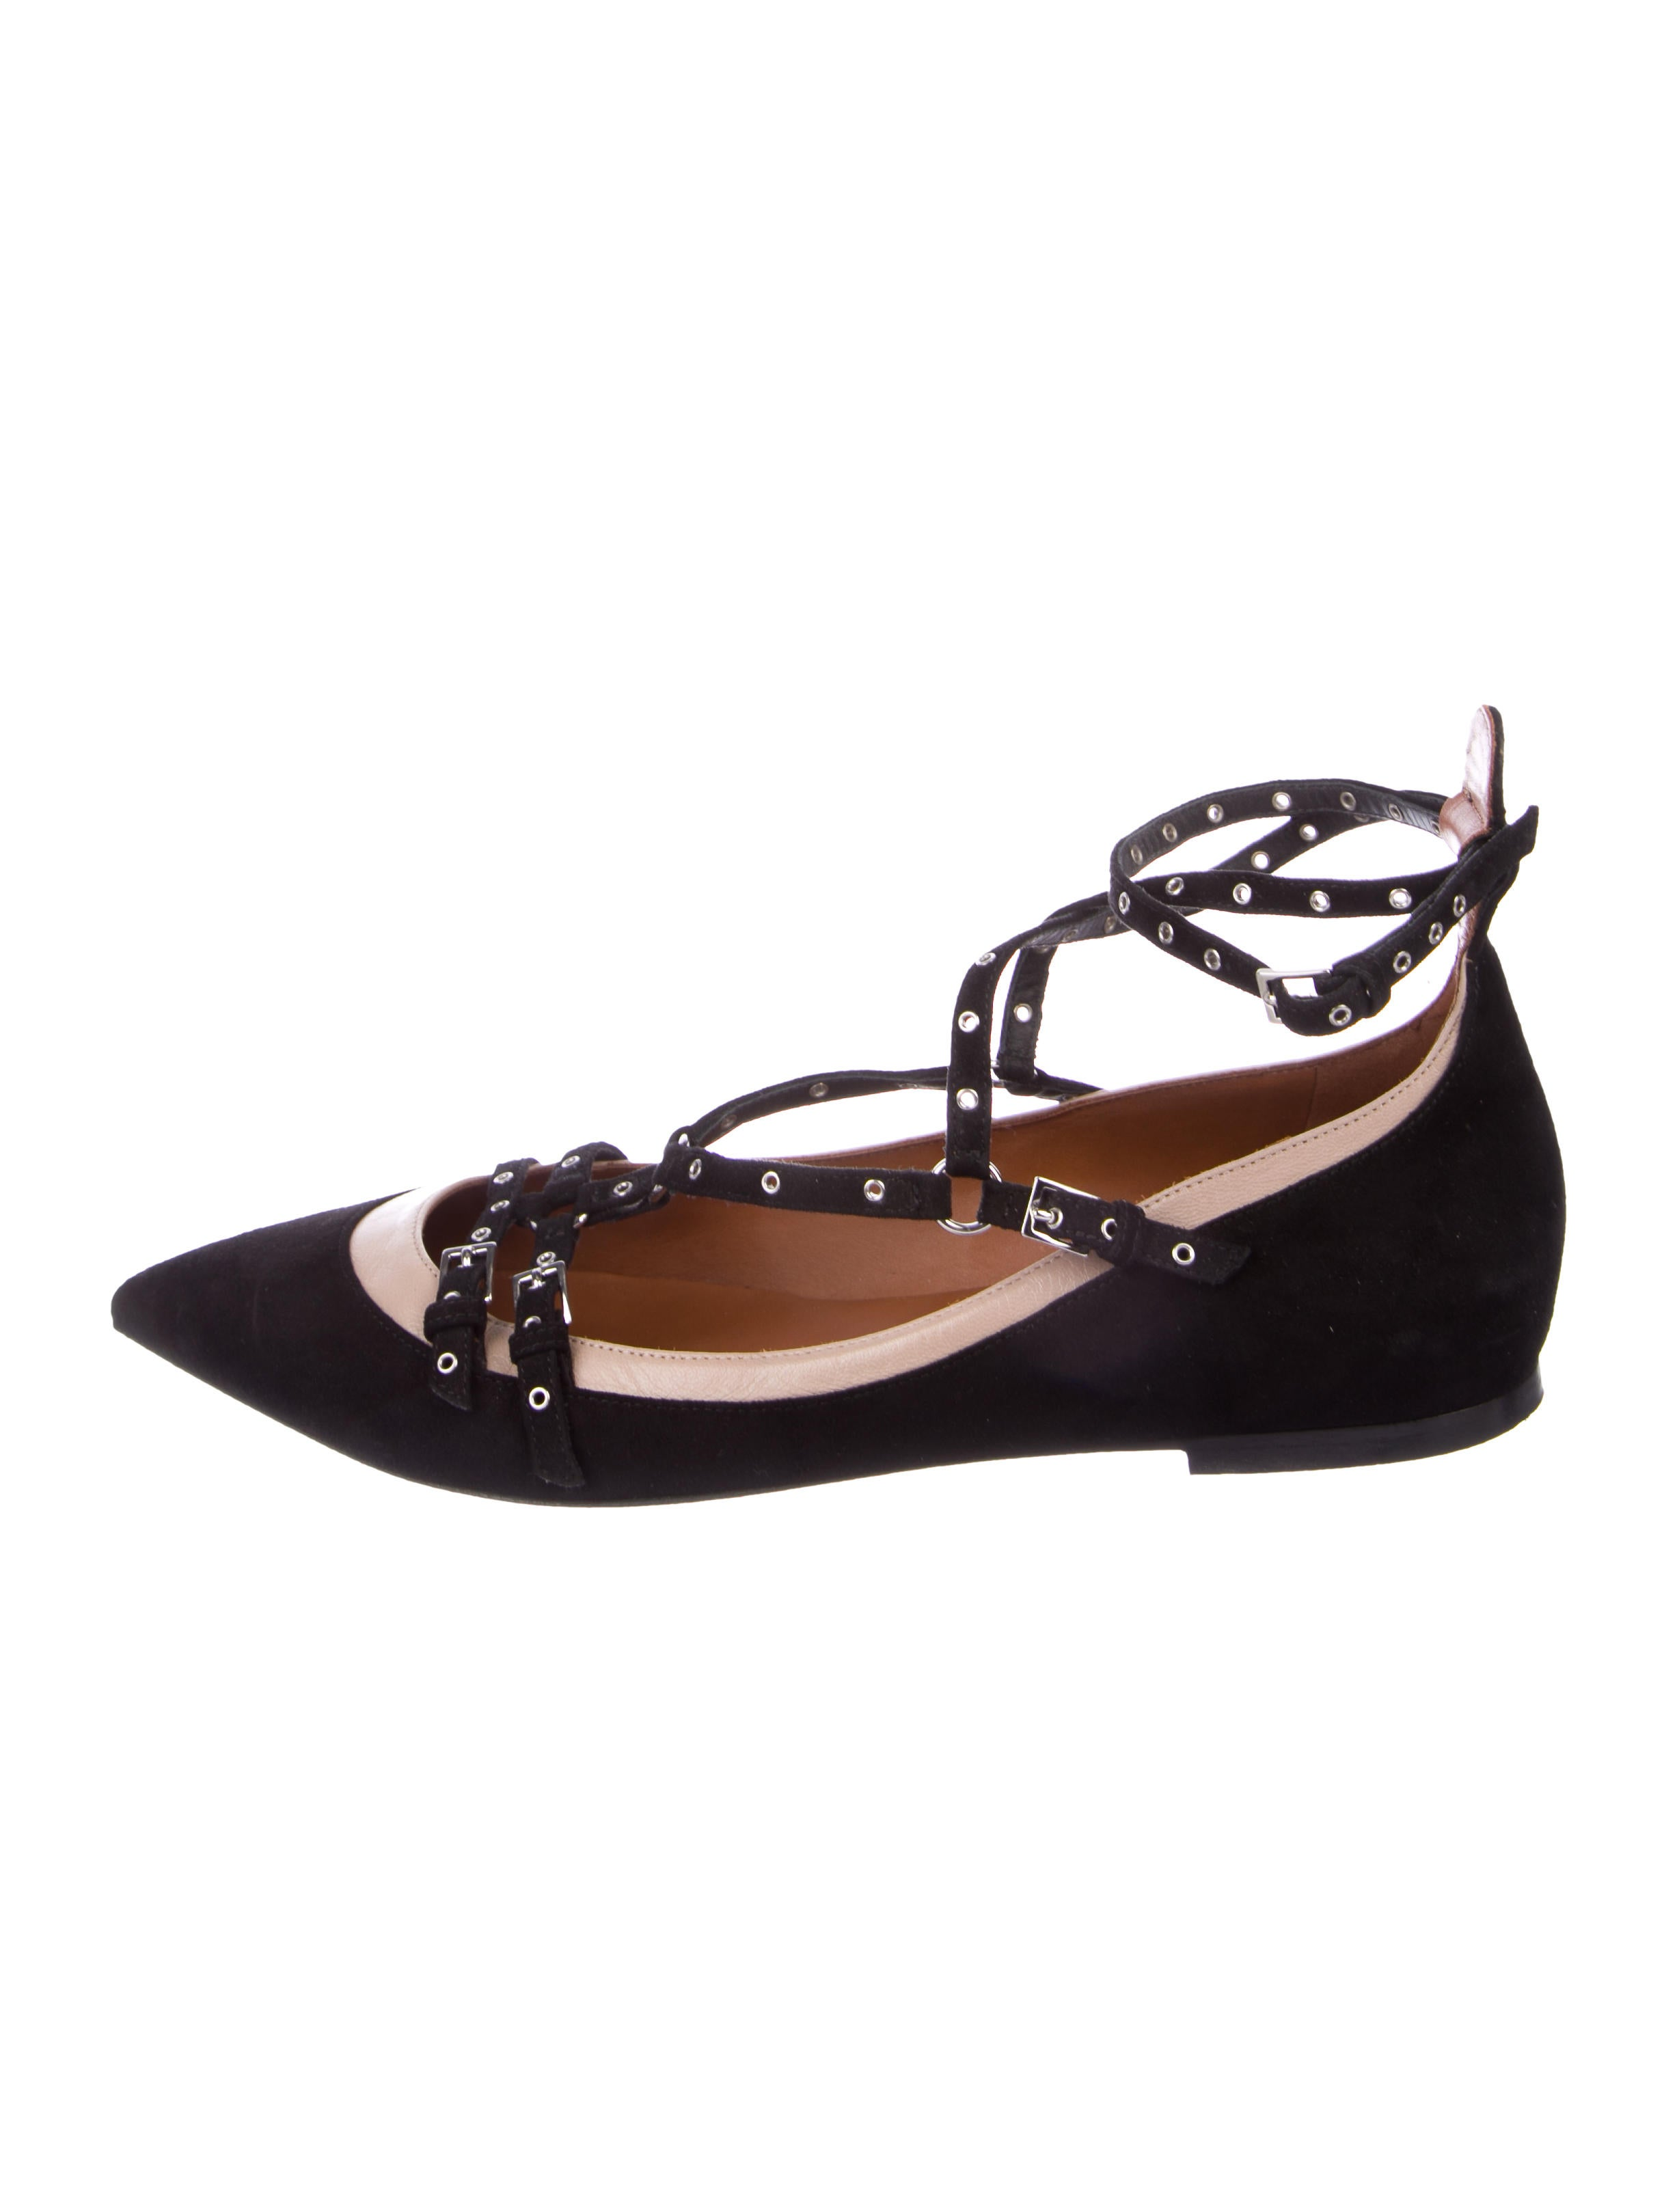 clearance 100% original sale 100% guaranteed Valentino Suede Grommet-Accented Flats XaX7nugE